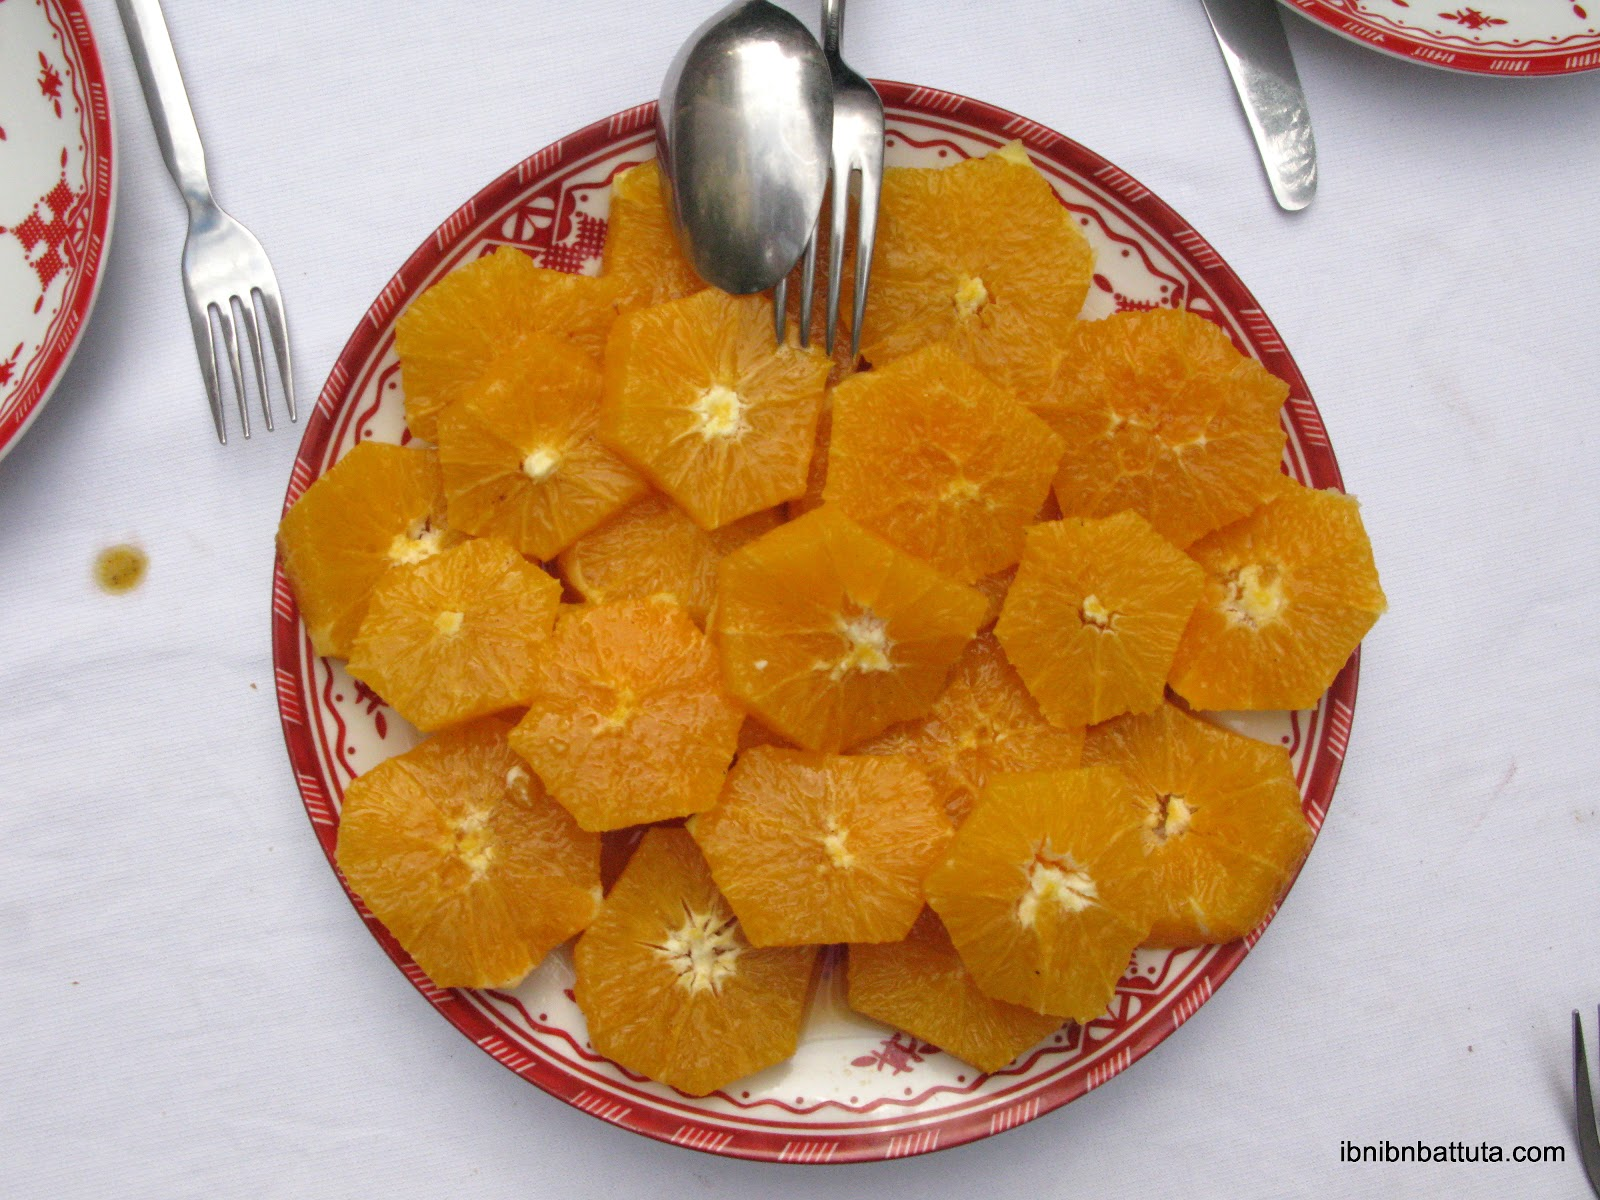 Basic Moroccan dessert: oranges and cinnamon